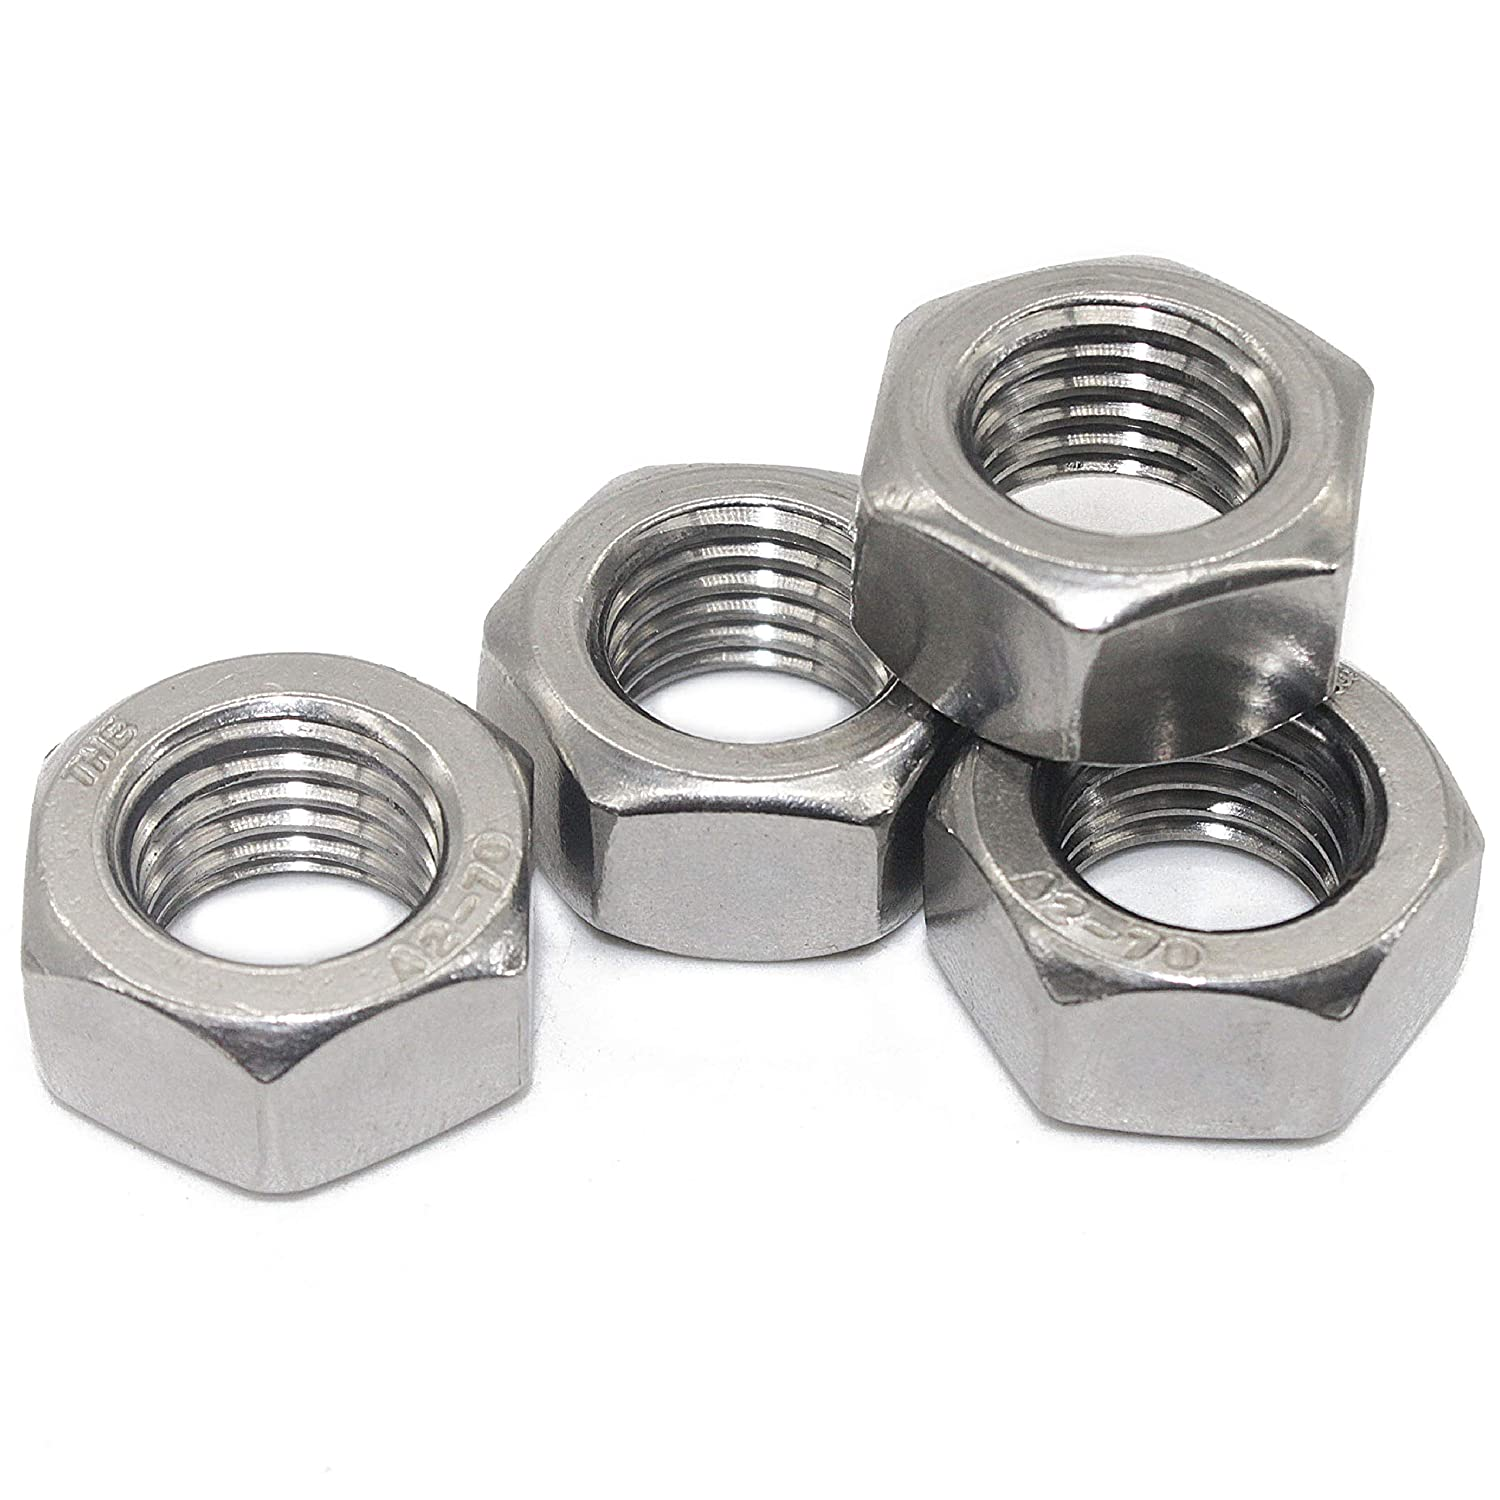 by Fullerkreg 304 18-8 Stainless Steel Nuts. 10 Pcs M16 x 2 mm Stainless Hex Nut